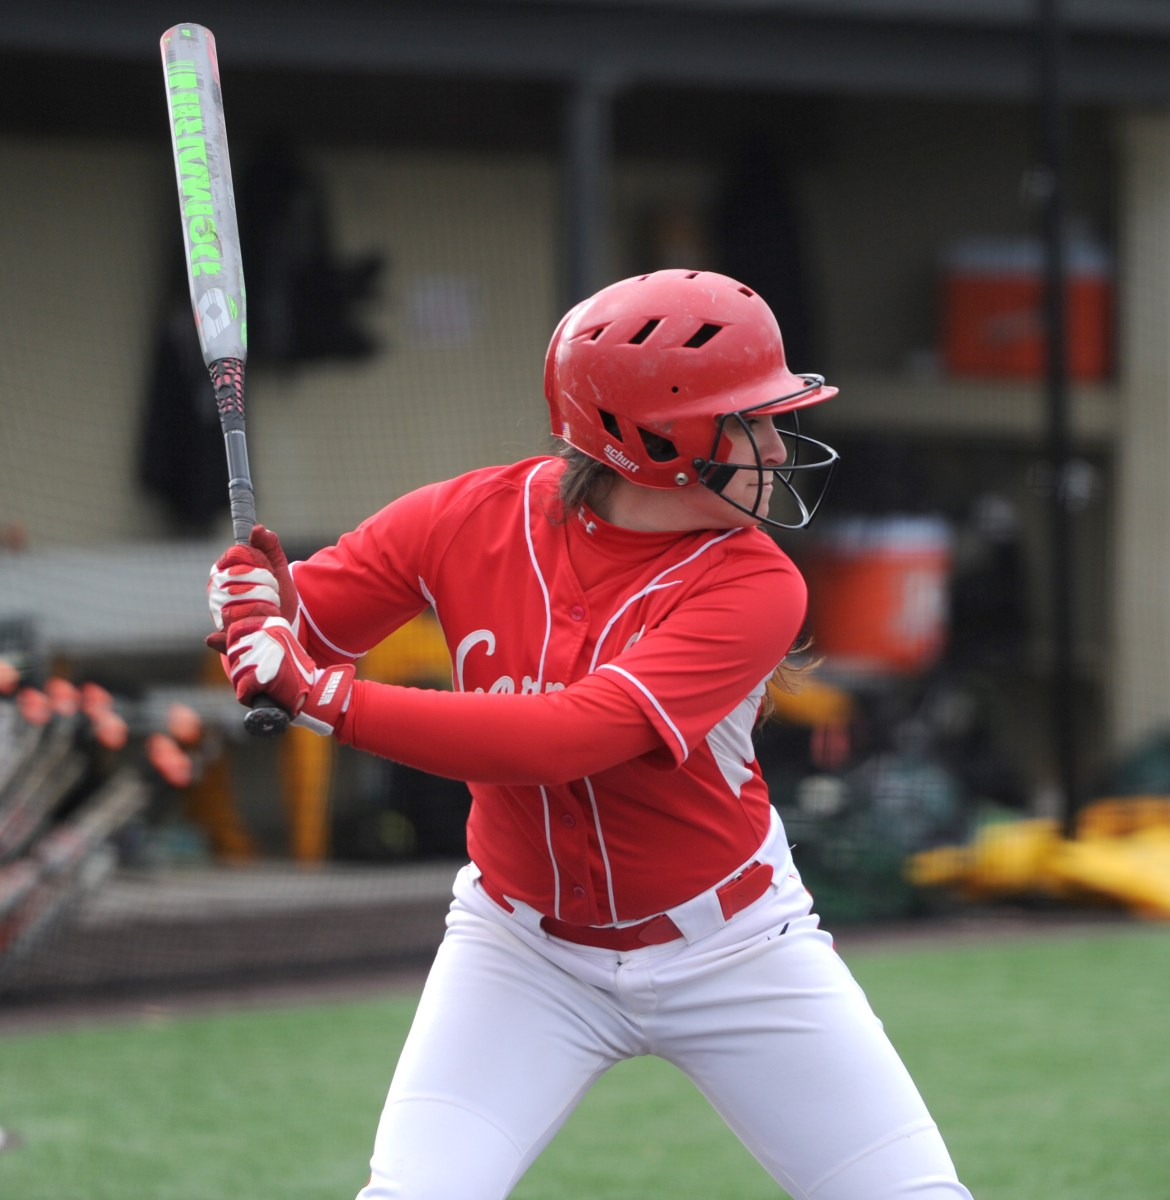 Led by senior centerfielder Meg Parker's four RBI's, the women's softball team picked up its first win of the season over Georgetown.